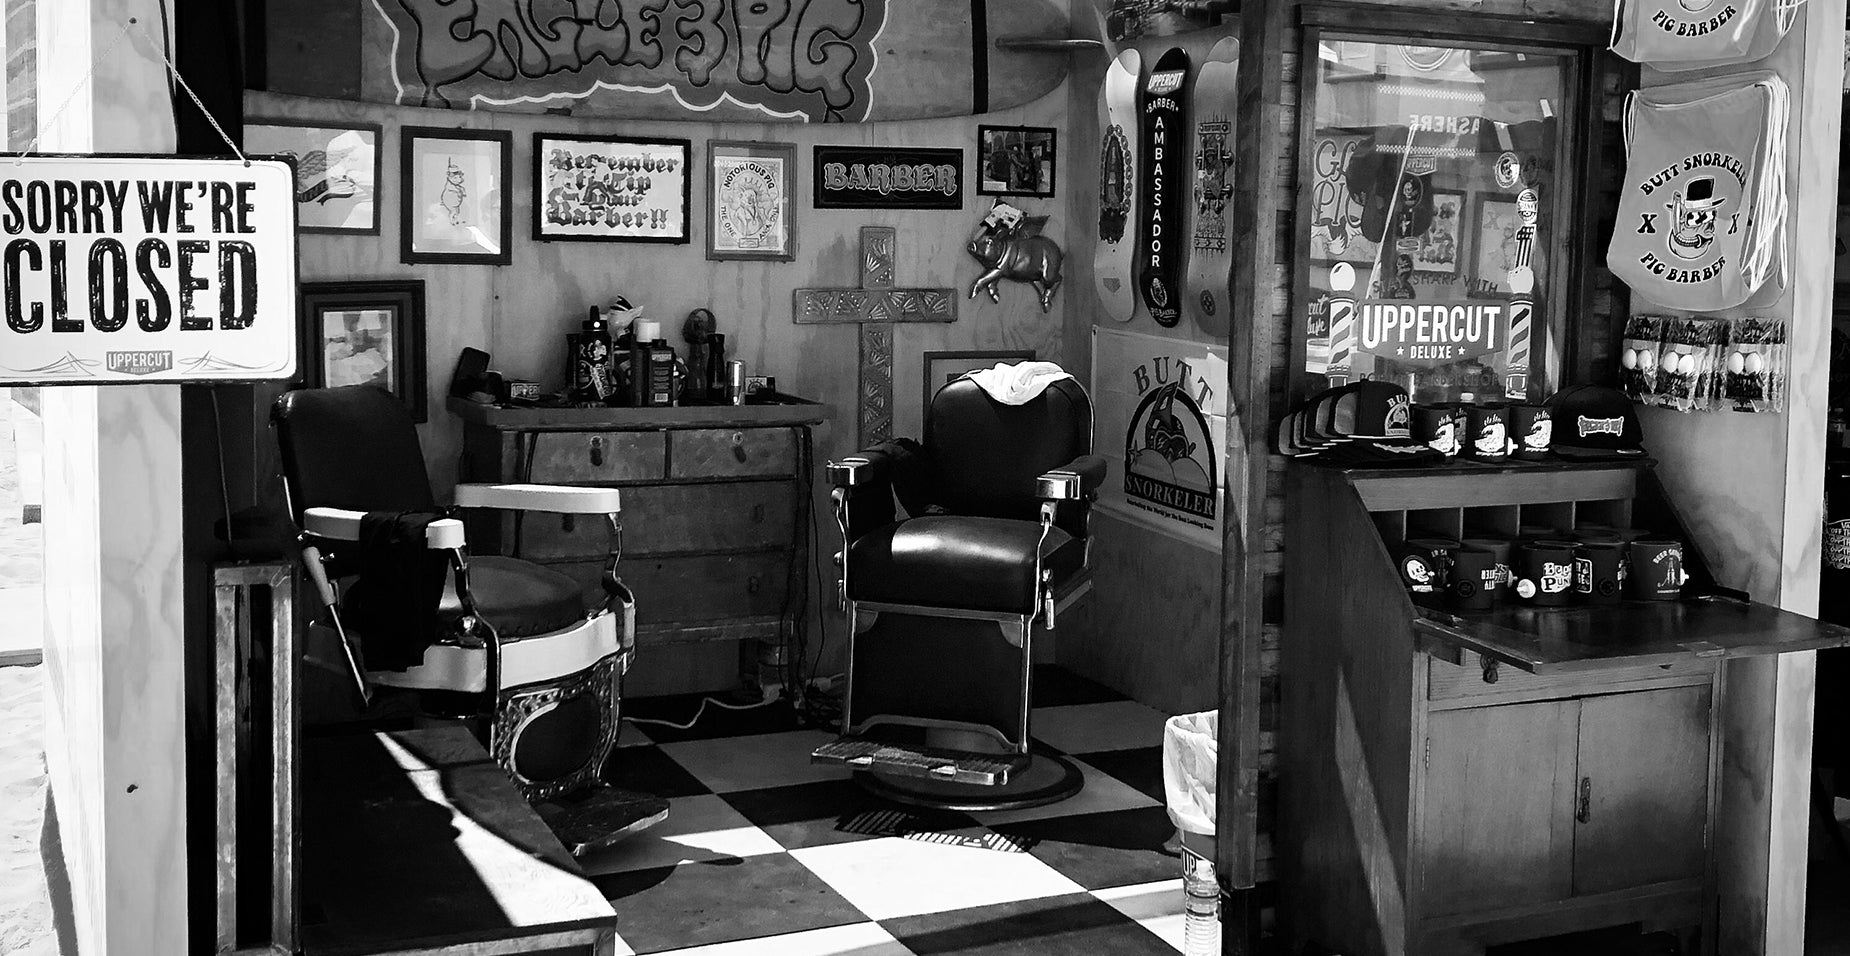 Barbershop with closed sign